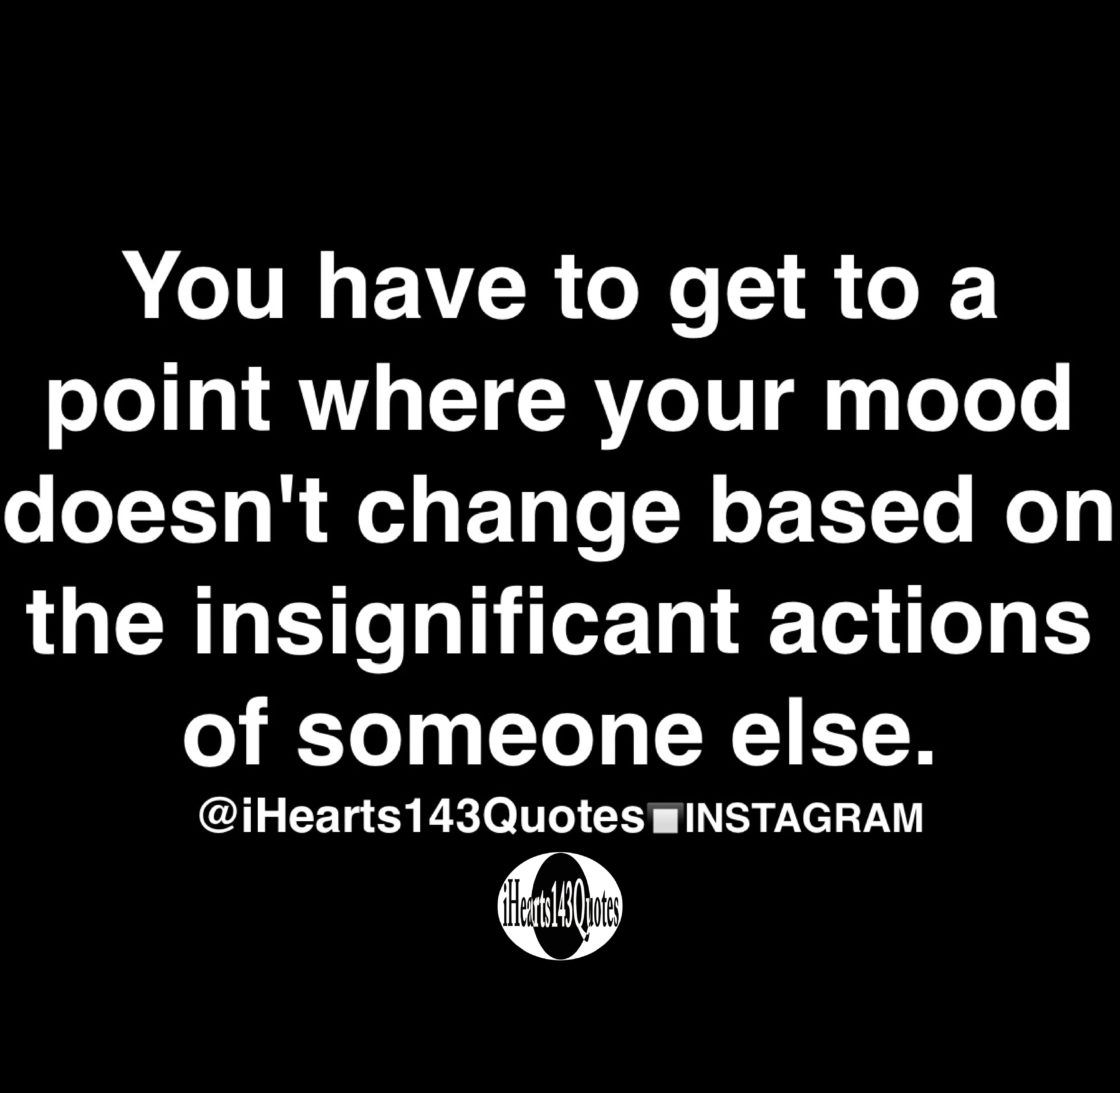 You have to get to a point where your mood doesn't change based on the insignificant actions of someone else - Quotes